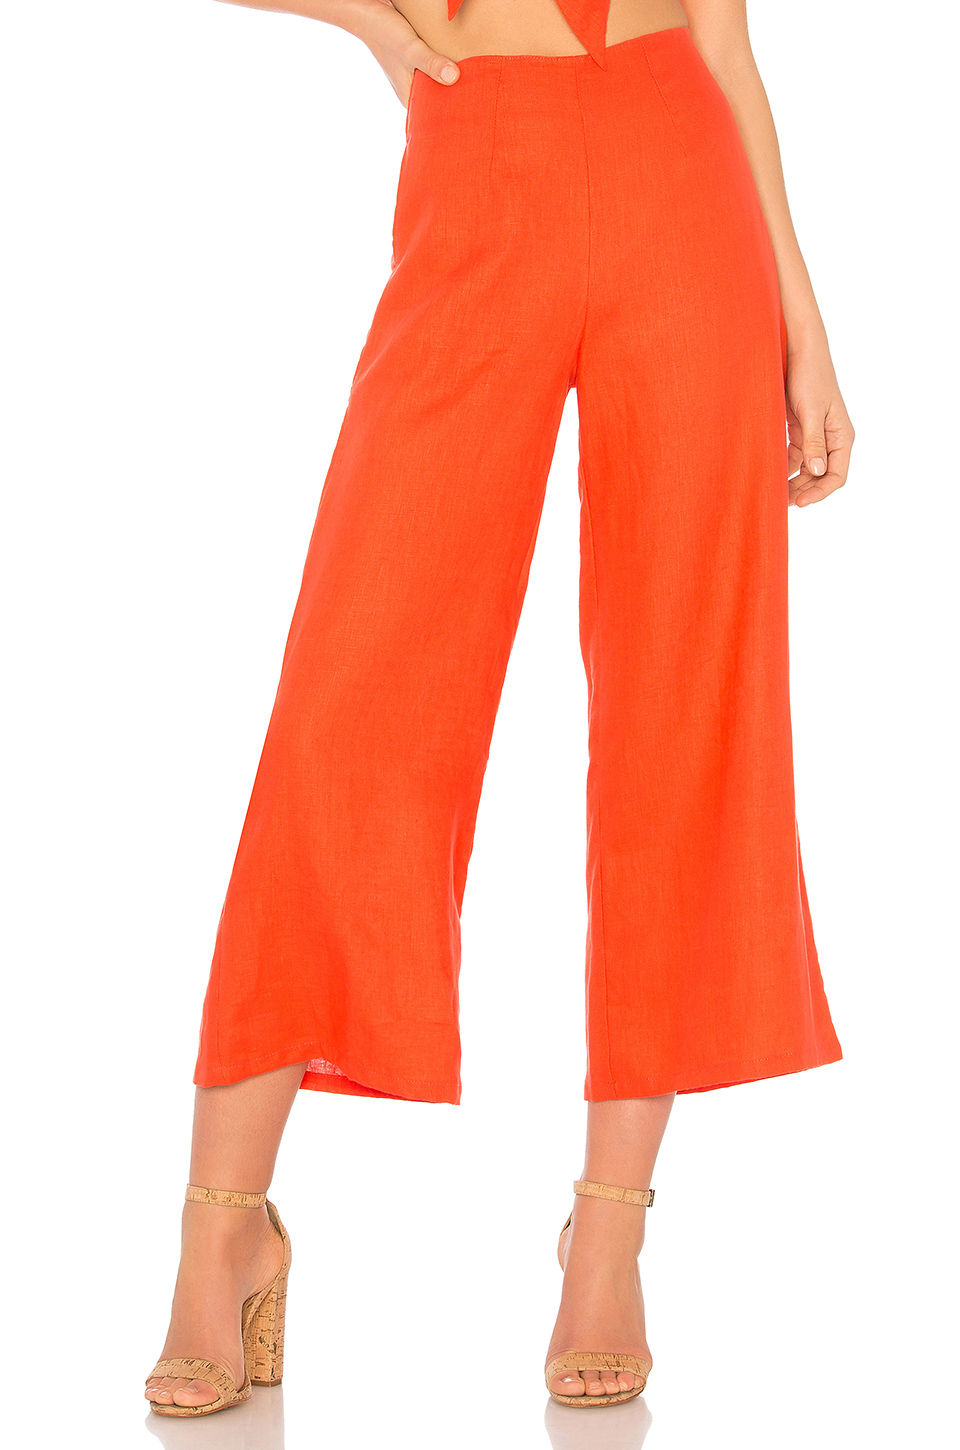 FAITHFULL THE BRAND Tomas Pants in Plain Tangerine